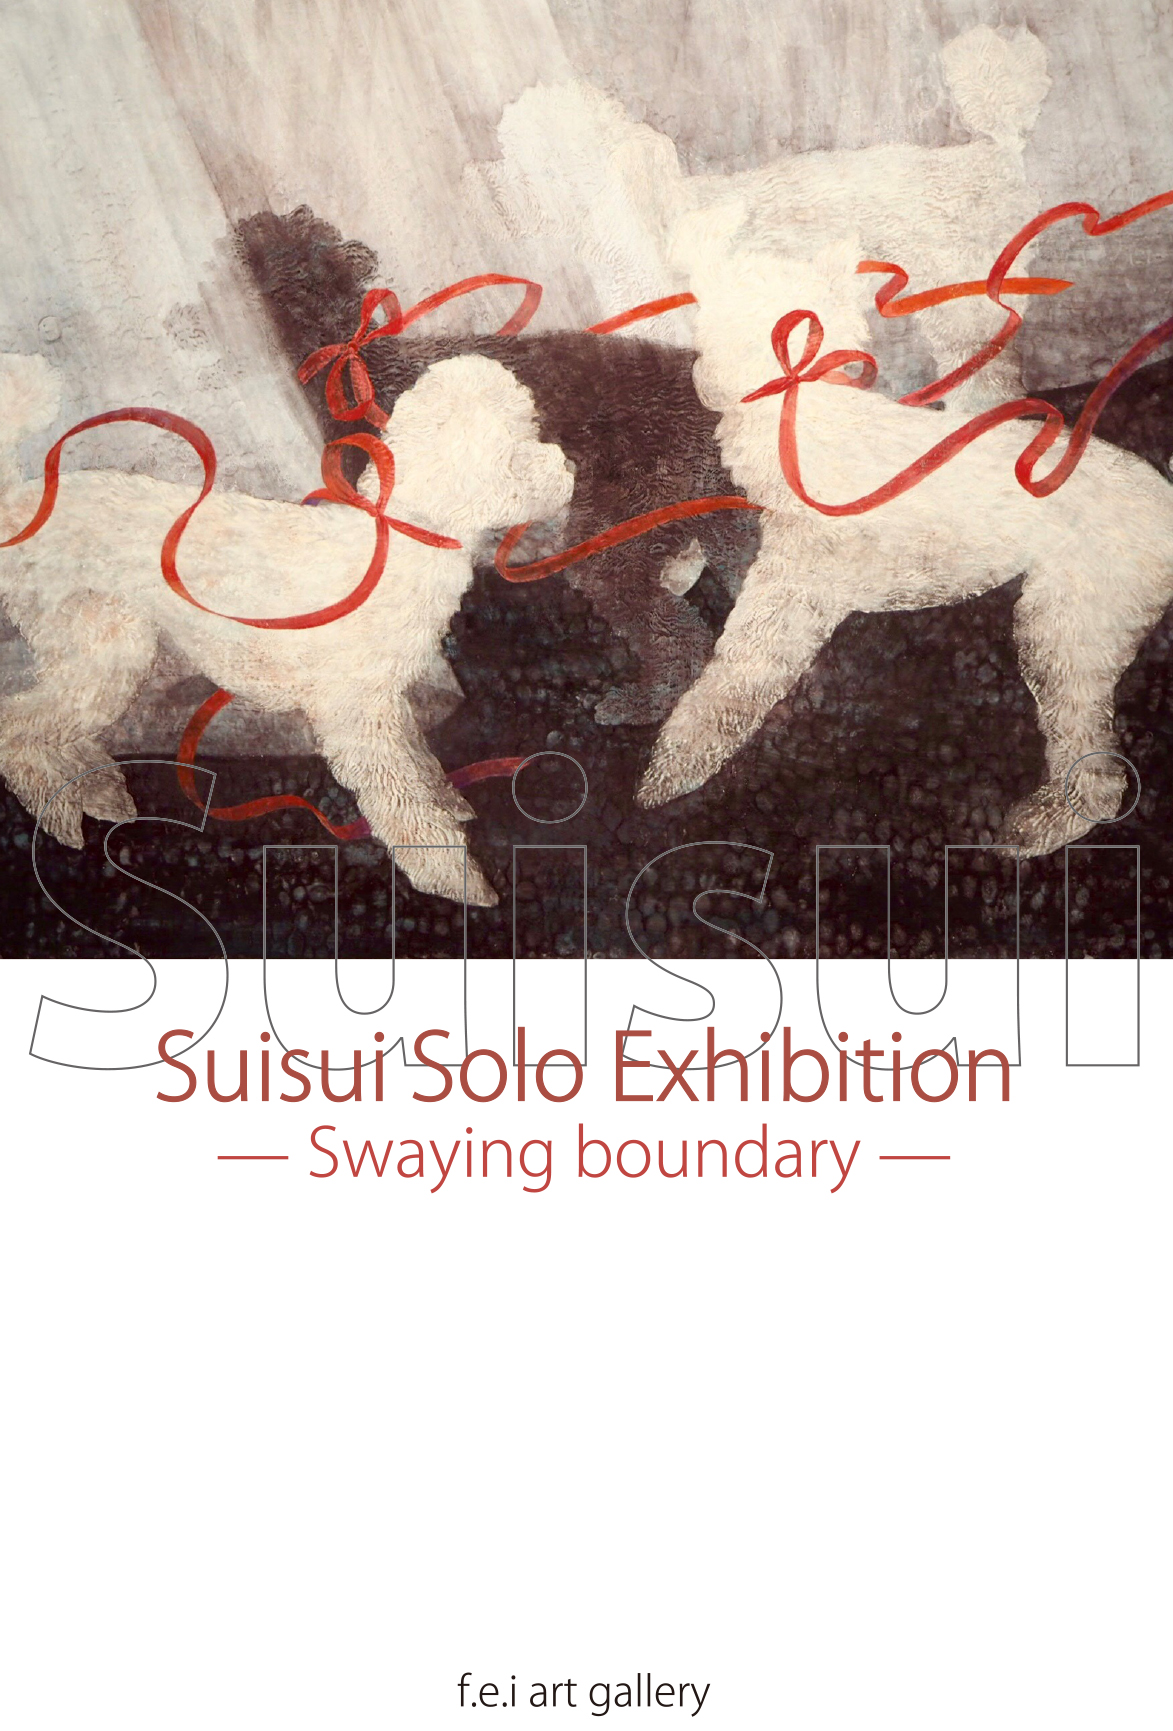 Suisui Solo Exhibition -Swaying boundary